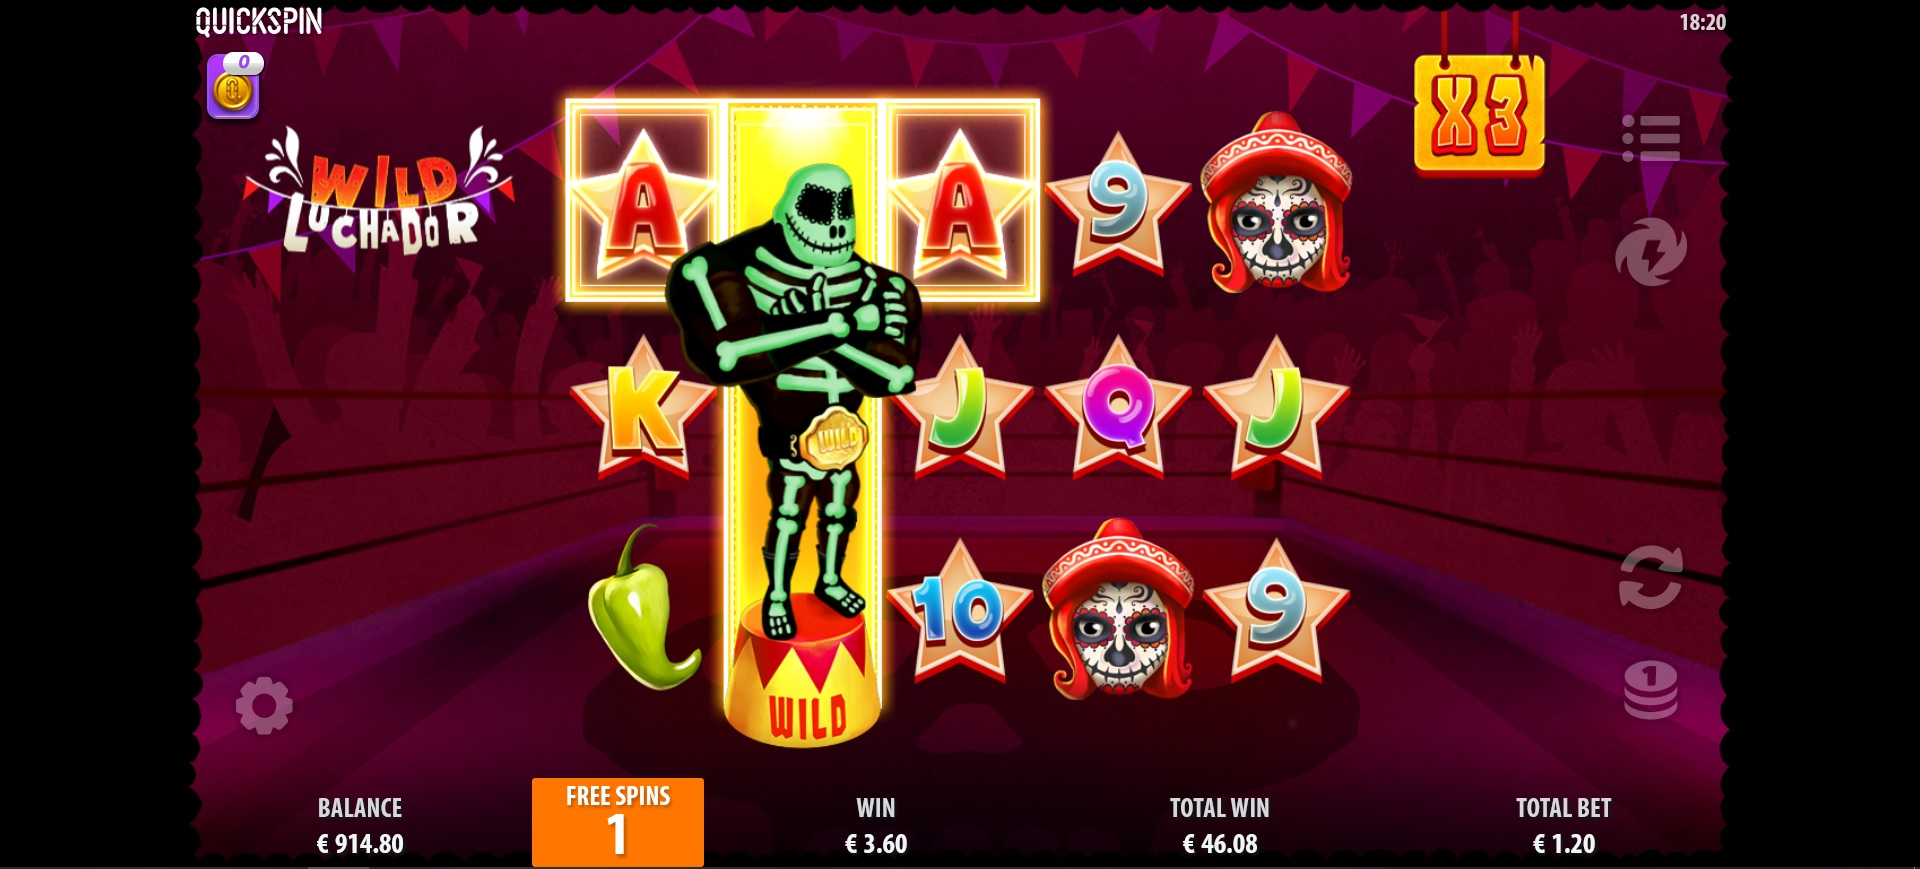 How to win big in Wild Luchador – Dead Slam Free Spins